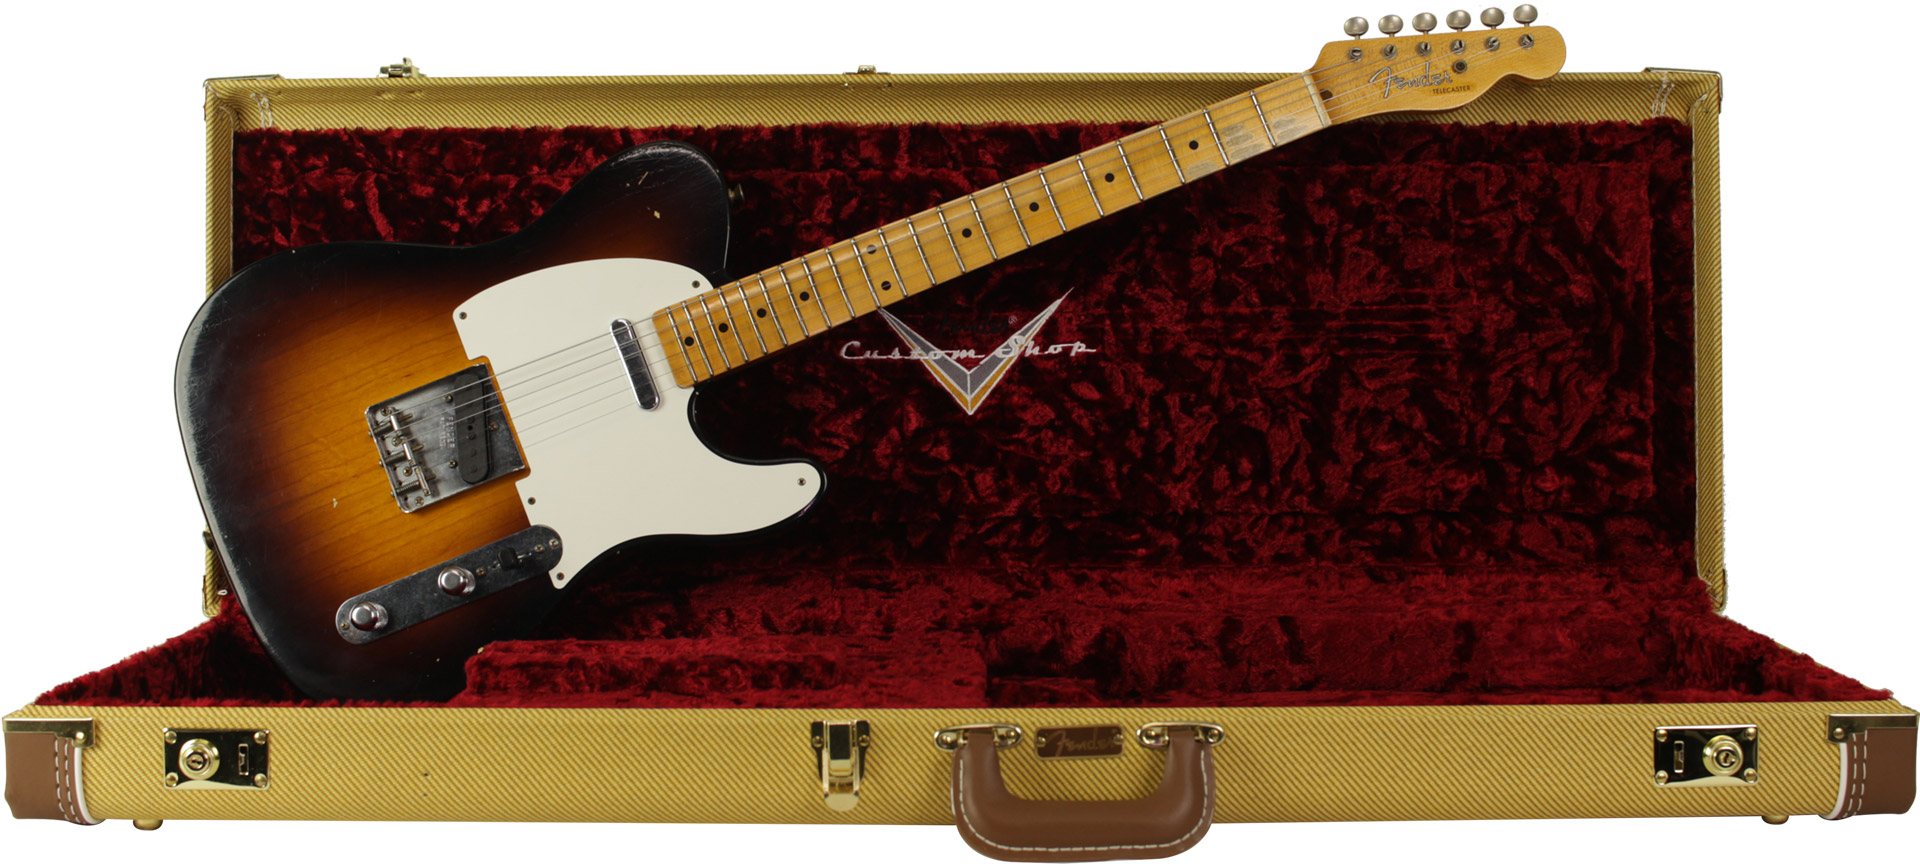 GUITARRA FENDER 56 TELECASTER TIME MACHINE JOURNEYMAN RELIC 923-5000-839 WIDE FADE 2-COLOR SB